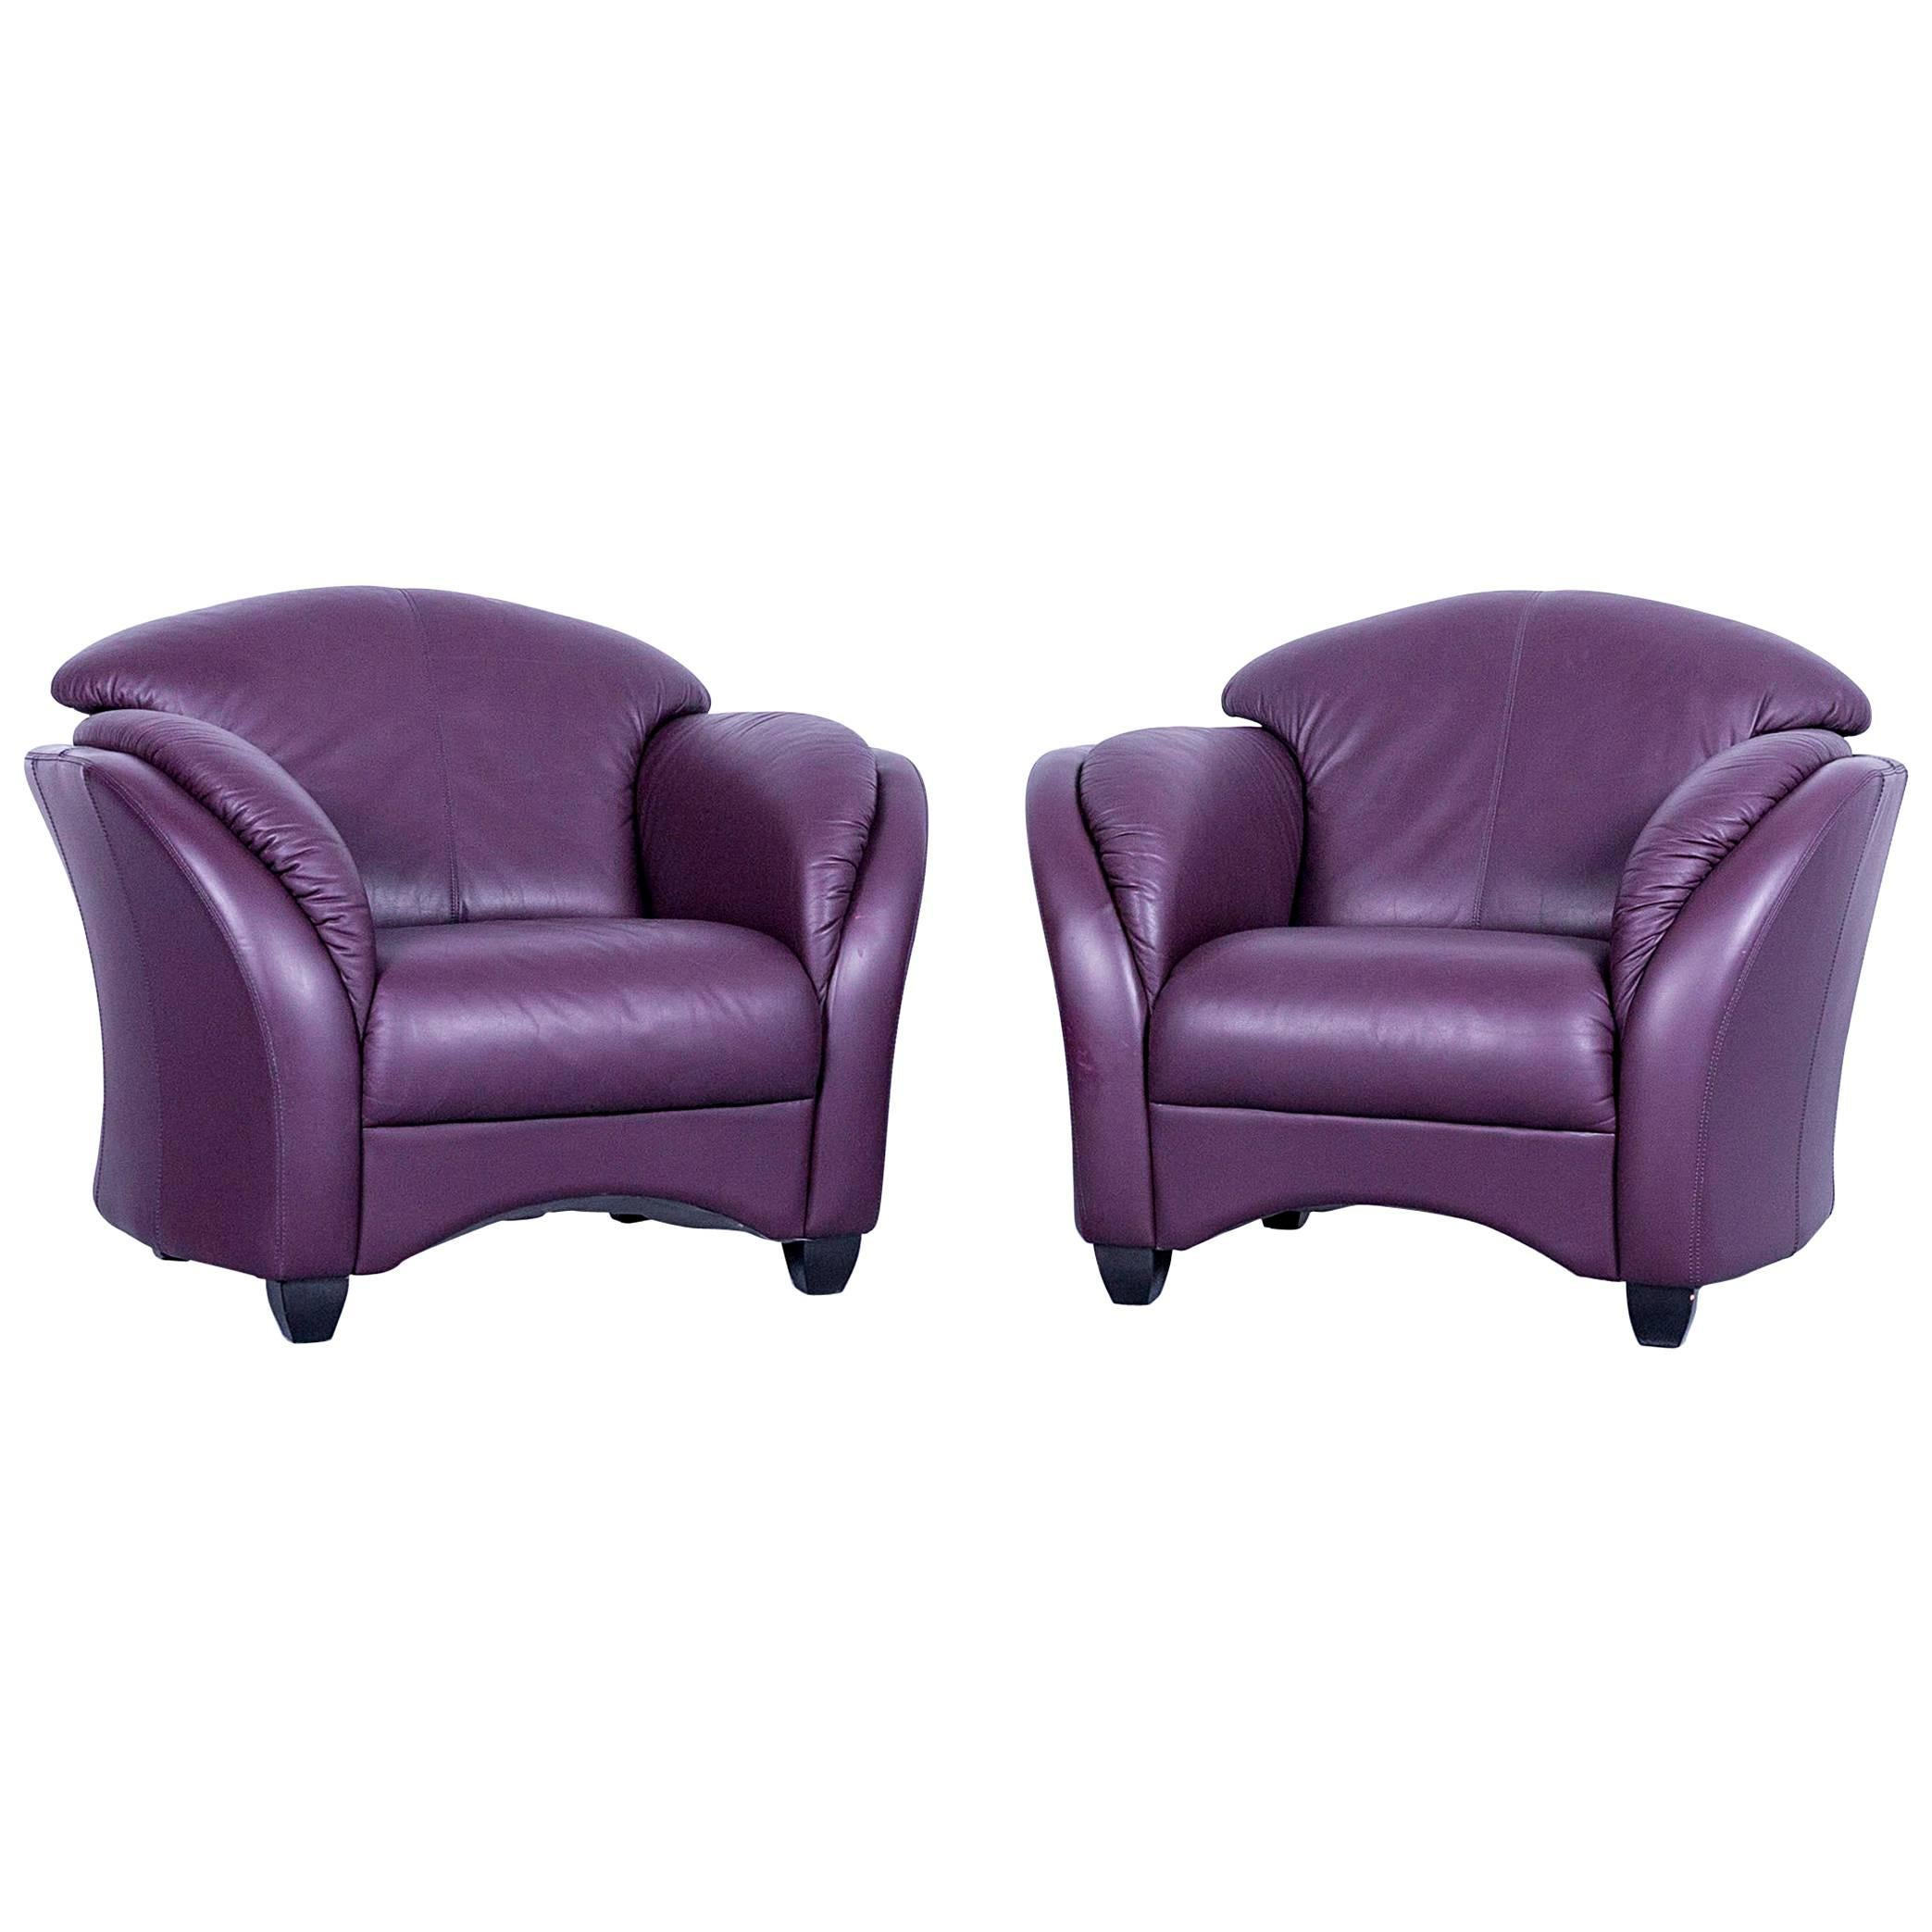 Himolla Designer Armchair Set Two Purple Leather Velvet One Seater Couch  Modern For Sale